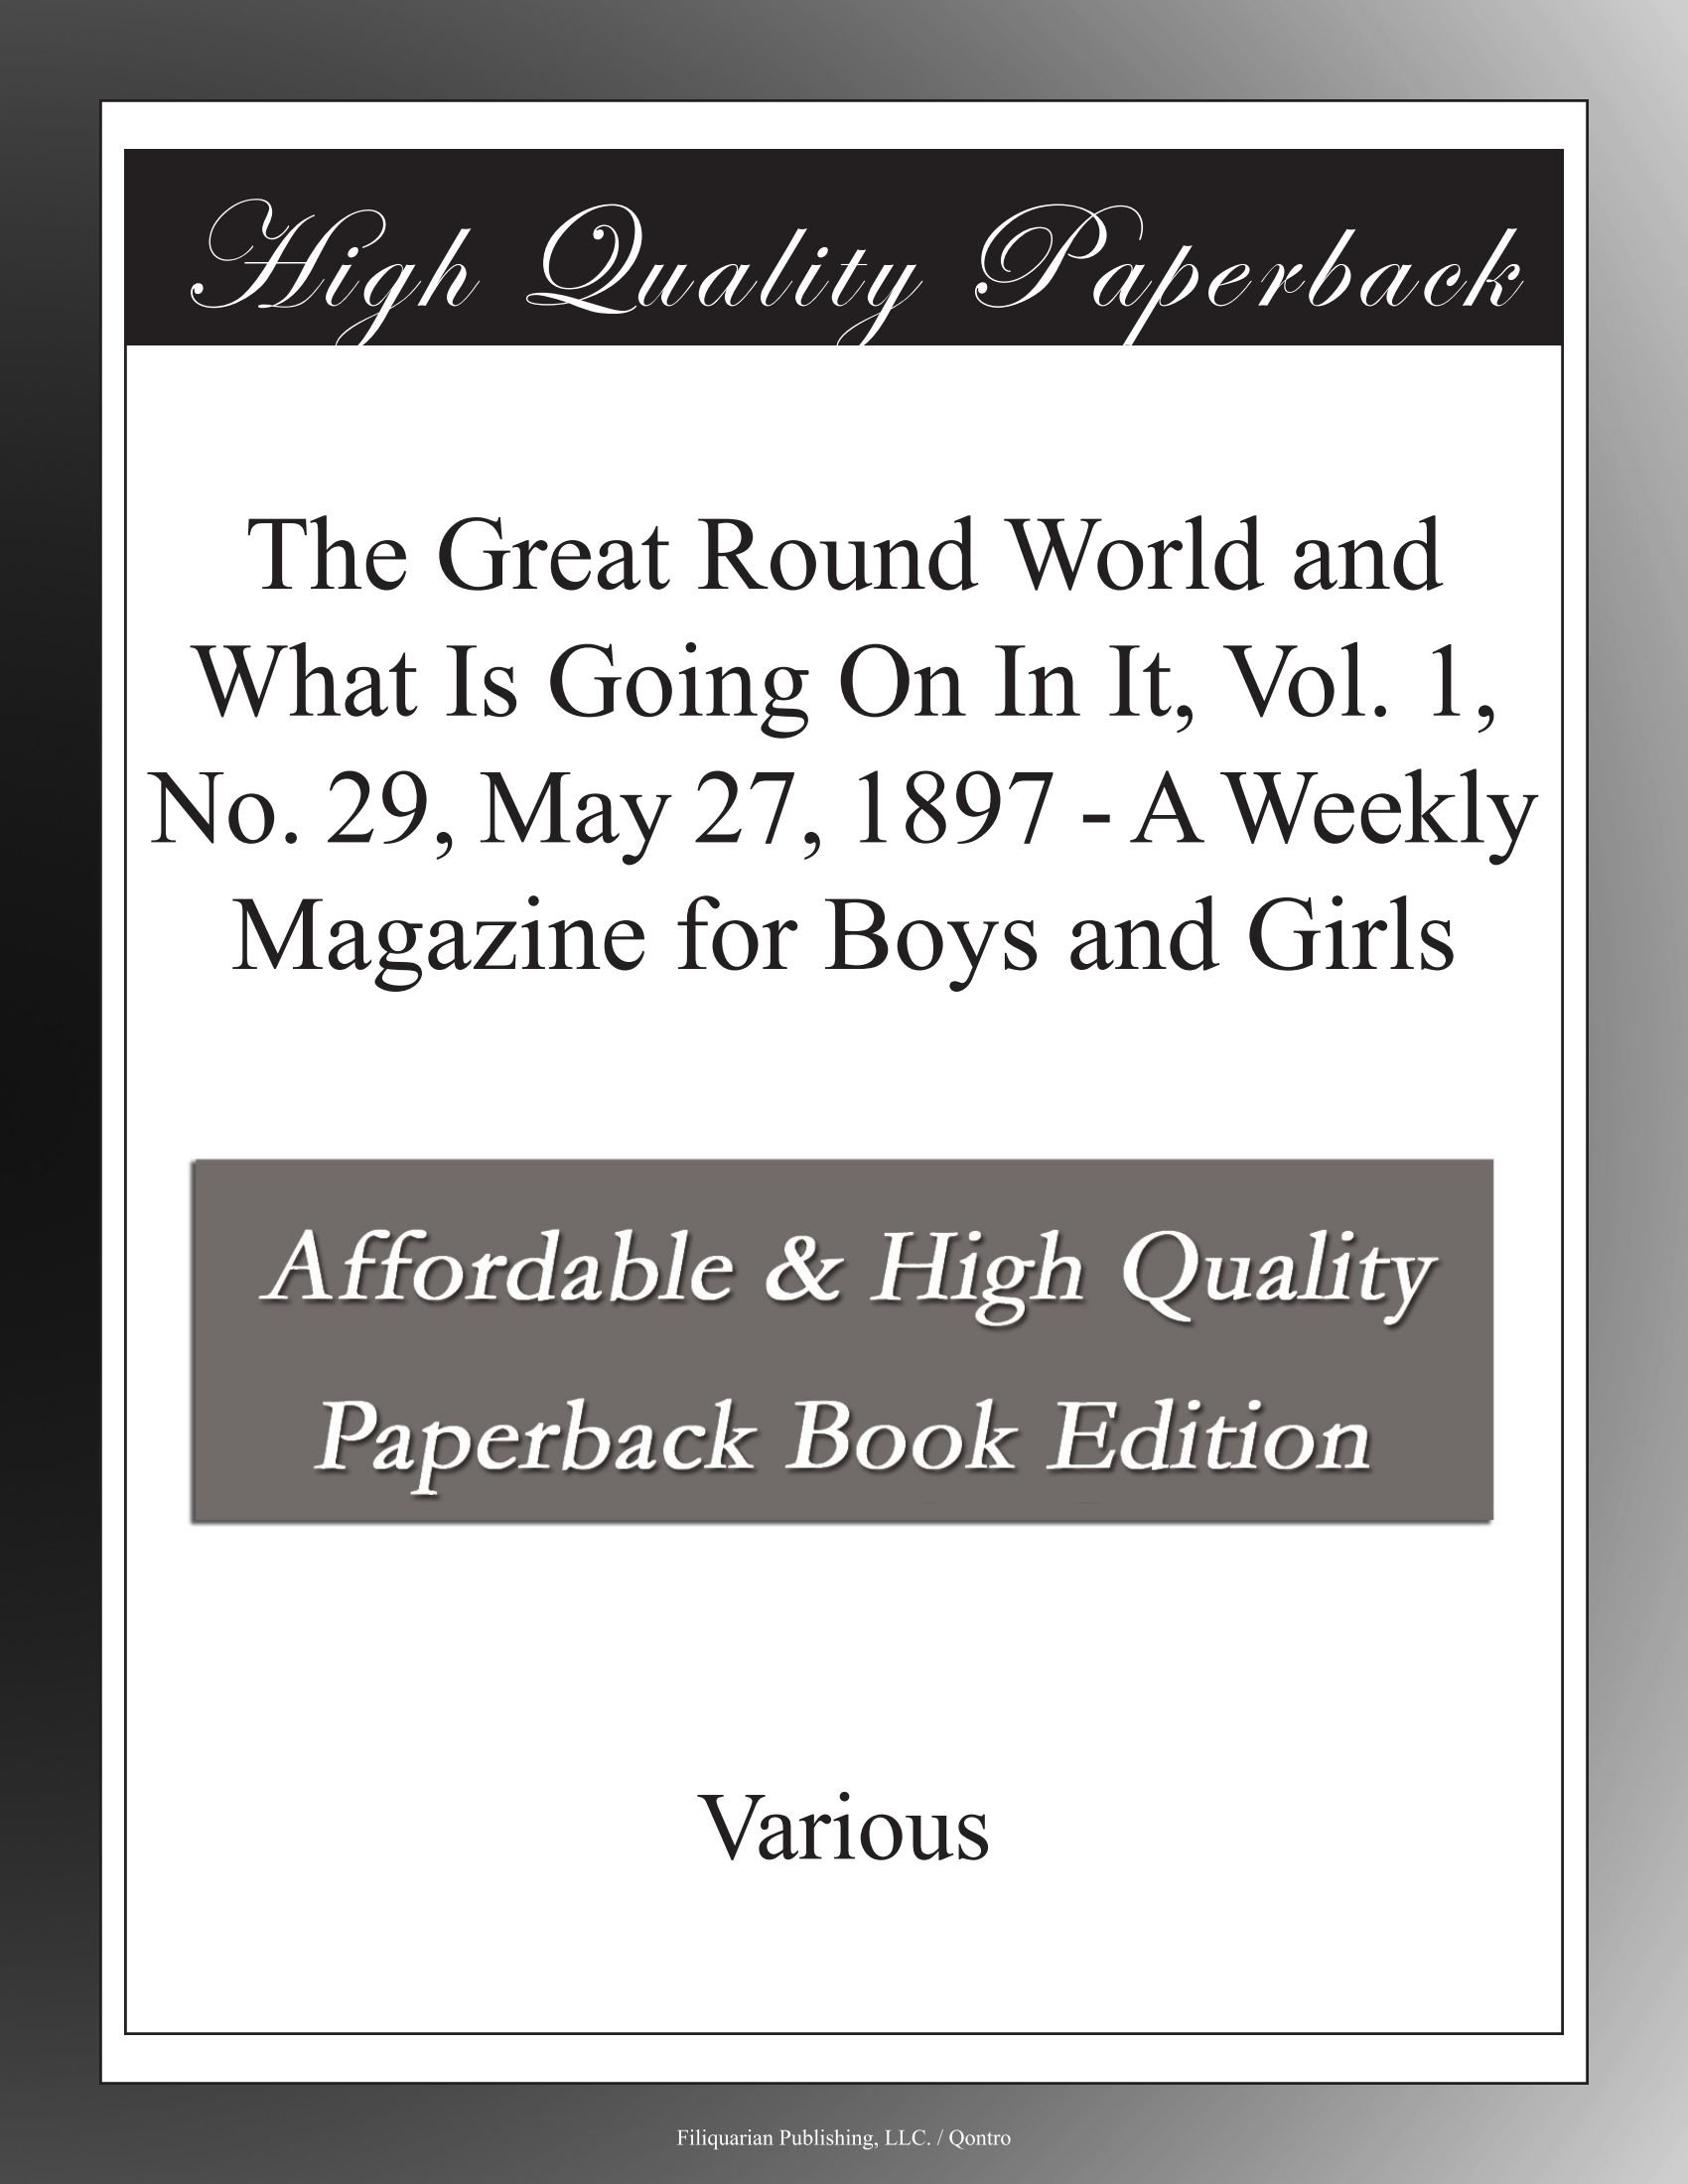 The Great Round World and What Is Going On In It, Vol. 1, No. 29, May 27, 1897 - A Weekly Magazine for Boys and Girls ebook